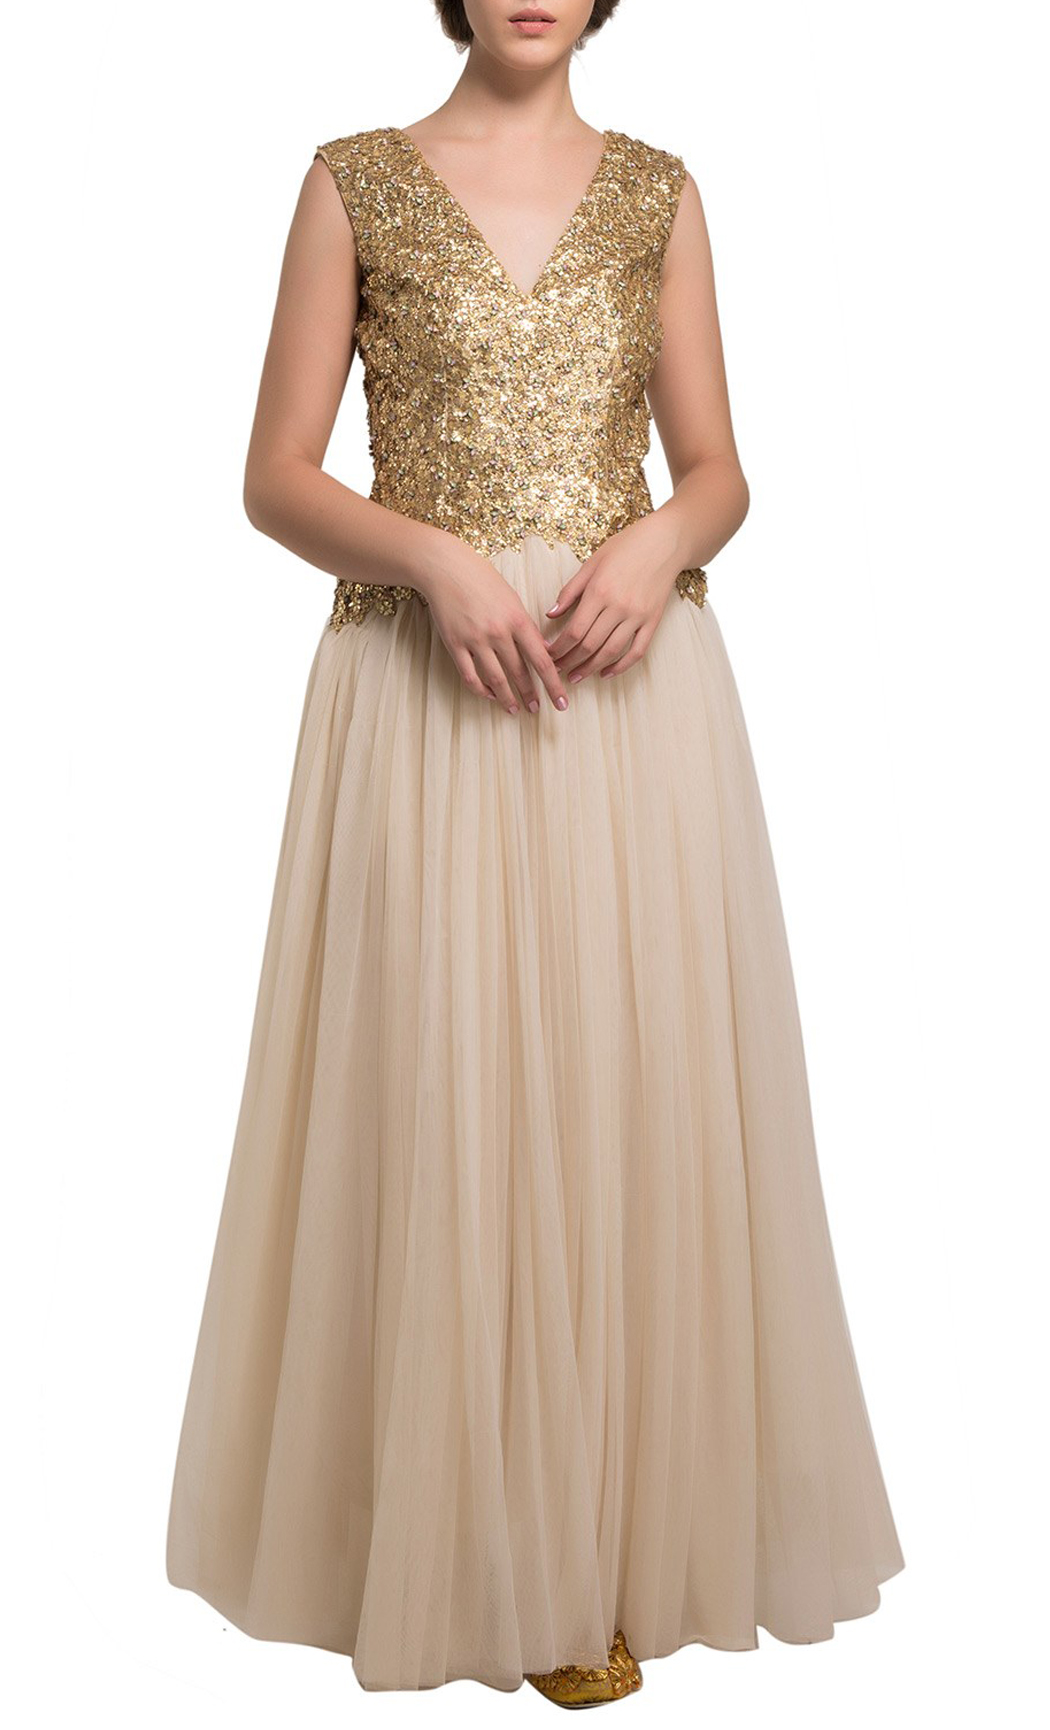 Gold and Off-White Gown Kurta - Buy Online